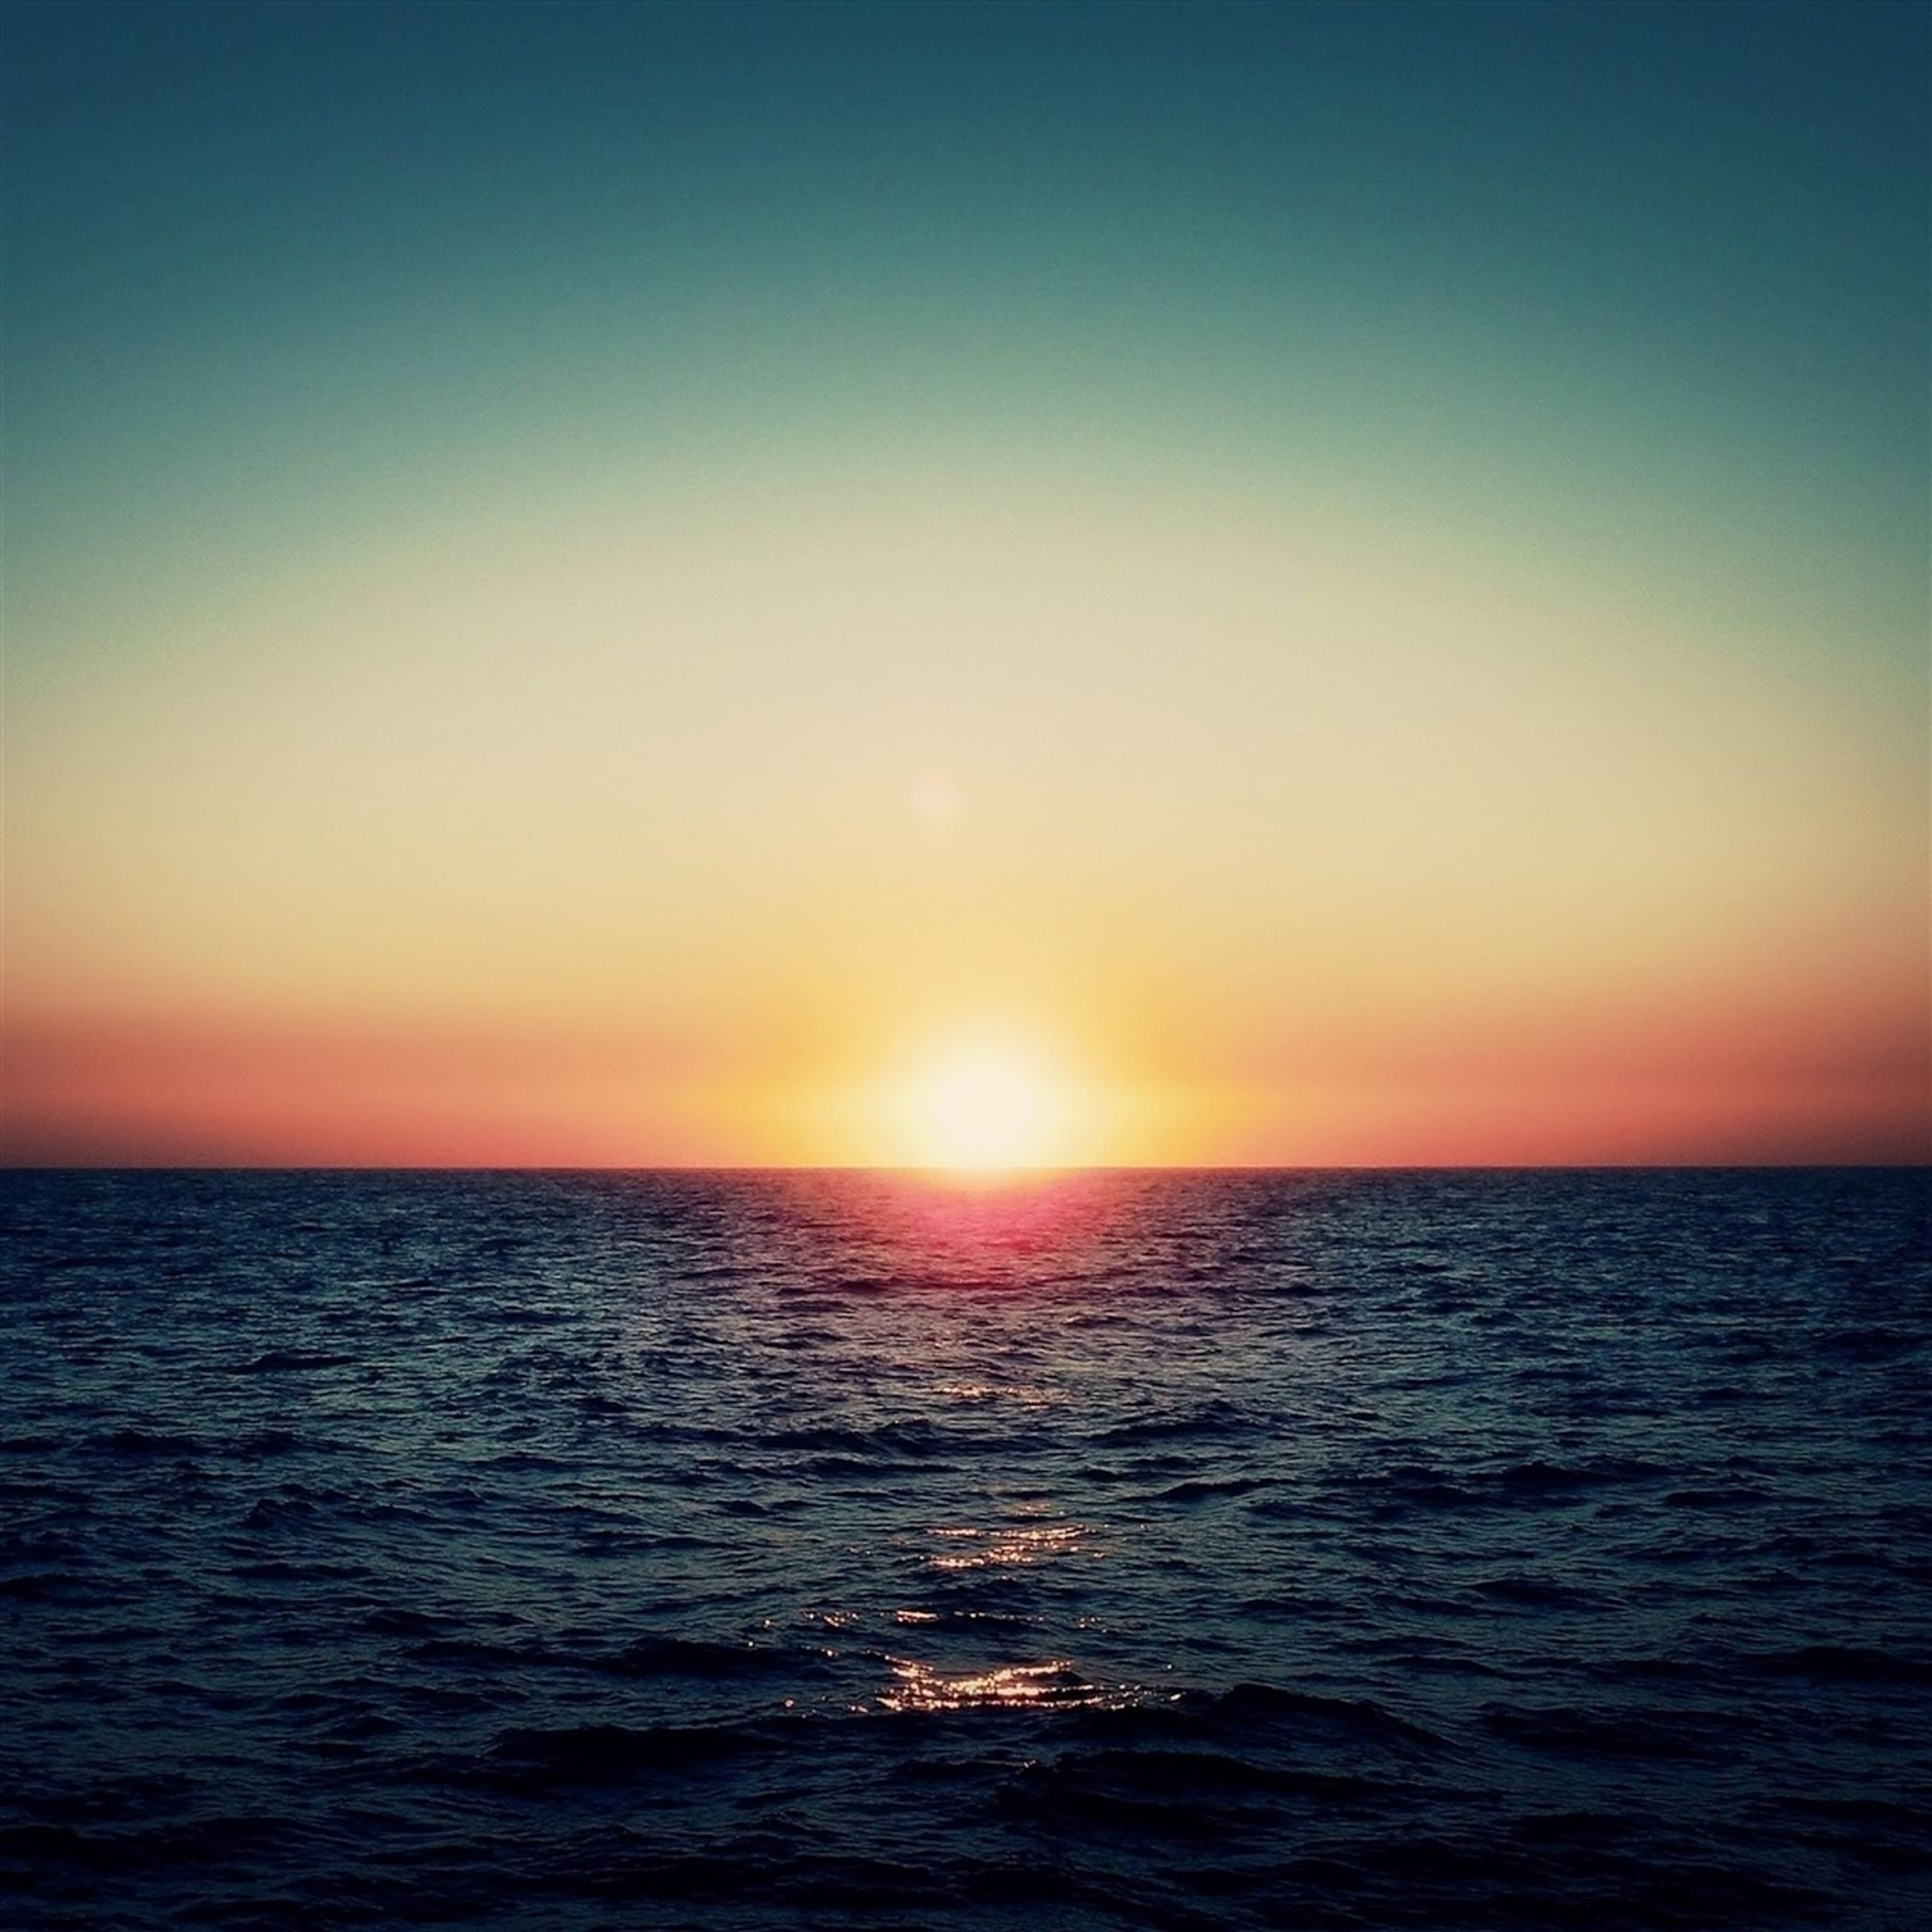 sea, water, horizon over water, sunset, waterfront, tranquil scene, scenics, sun, beauty in nature, tranquility, rippled, idyllic, nature, clear sky, orange color, copy space, seascape, sky, sunlight, reflection